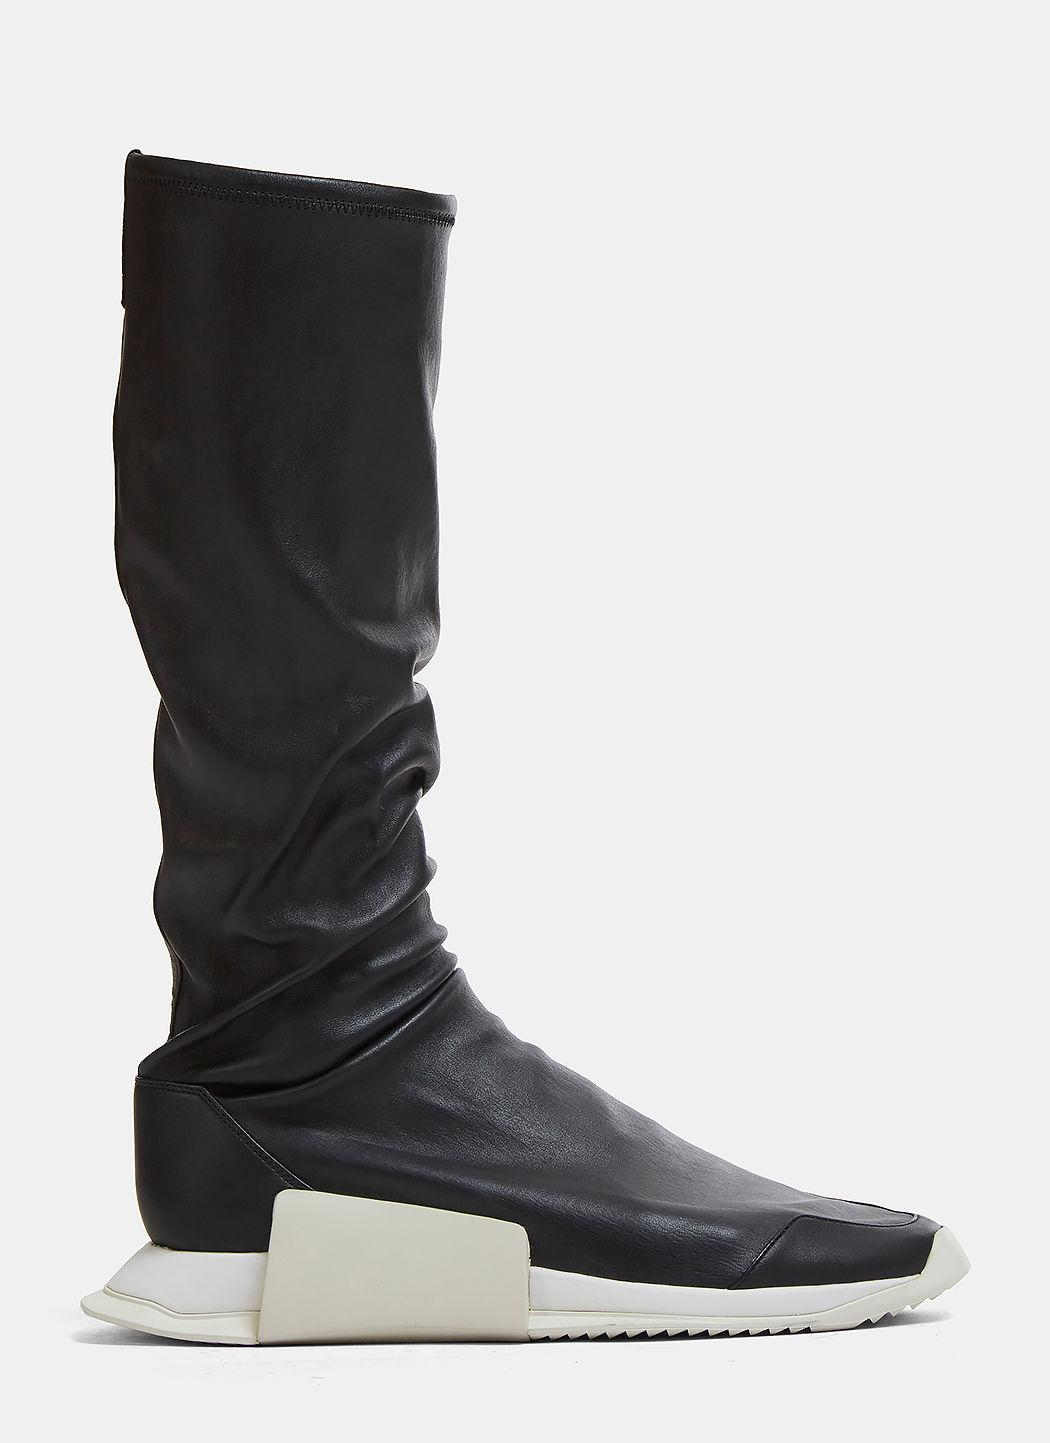 Adidas By Rick Owens Ro Runner Leather Stretch Sneaker Boots In Black